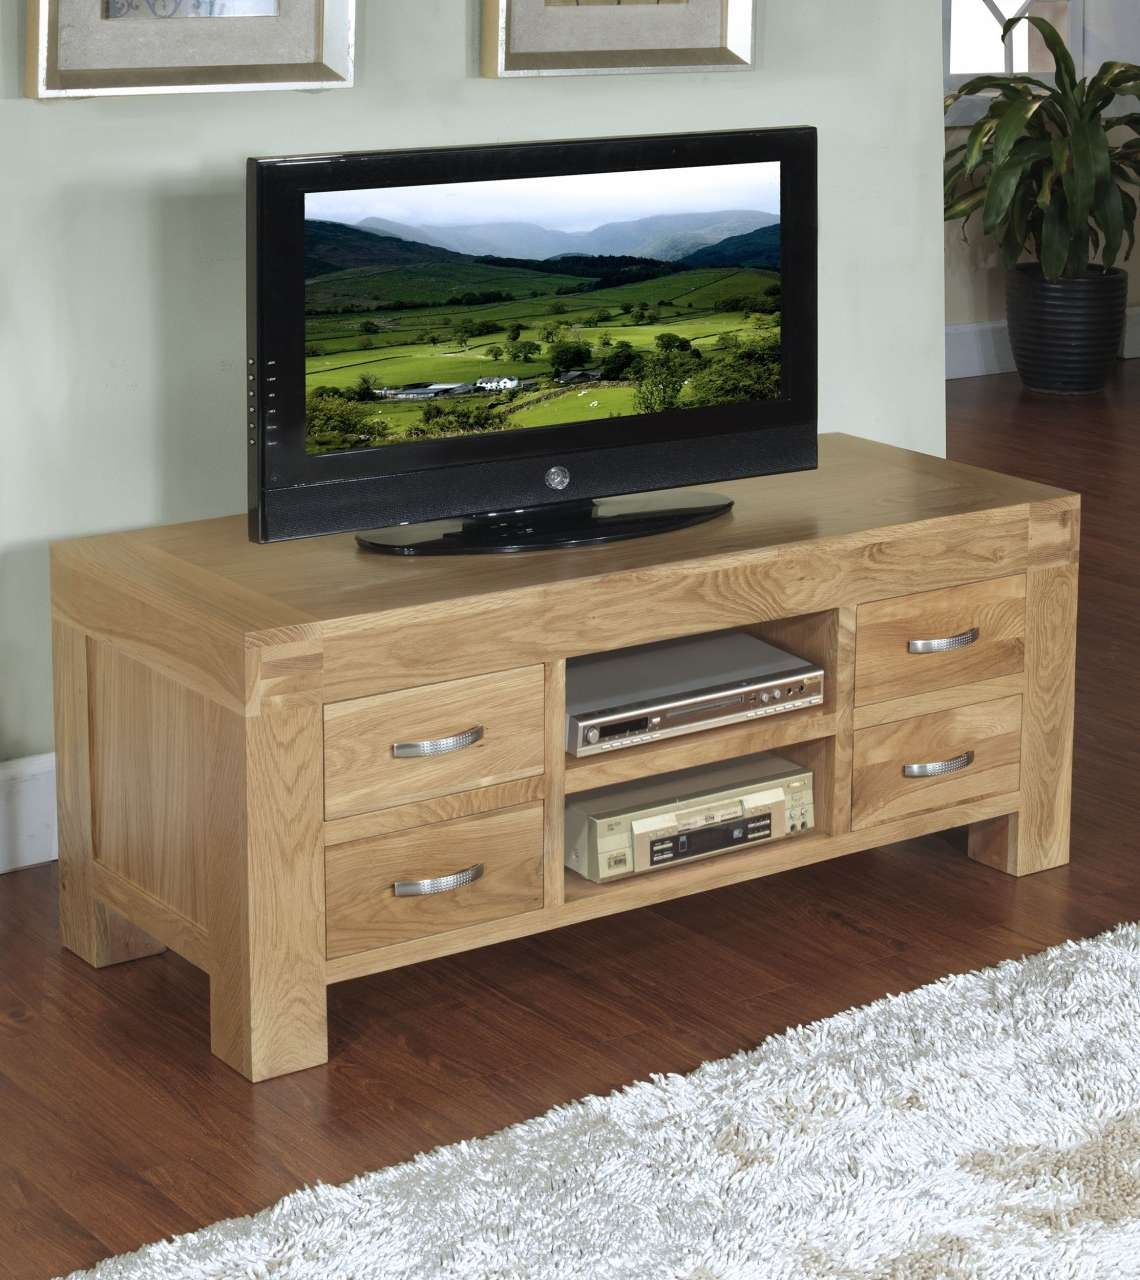 Cabinet Tv Stand Furniture | Uv Furniture Within Widescreen Tv Cabinets (View 16 of 20)